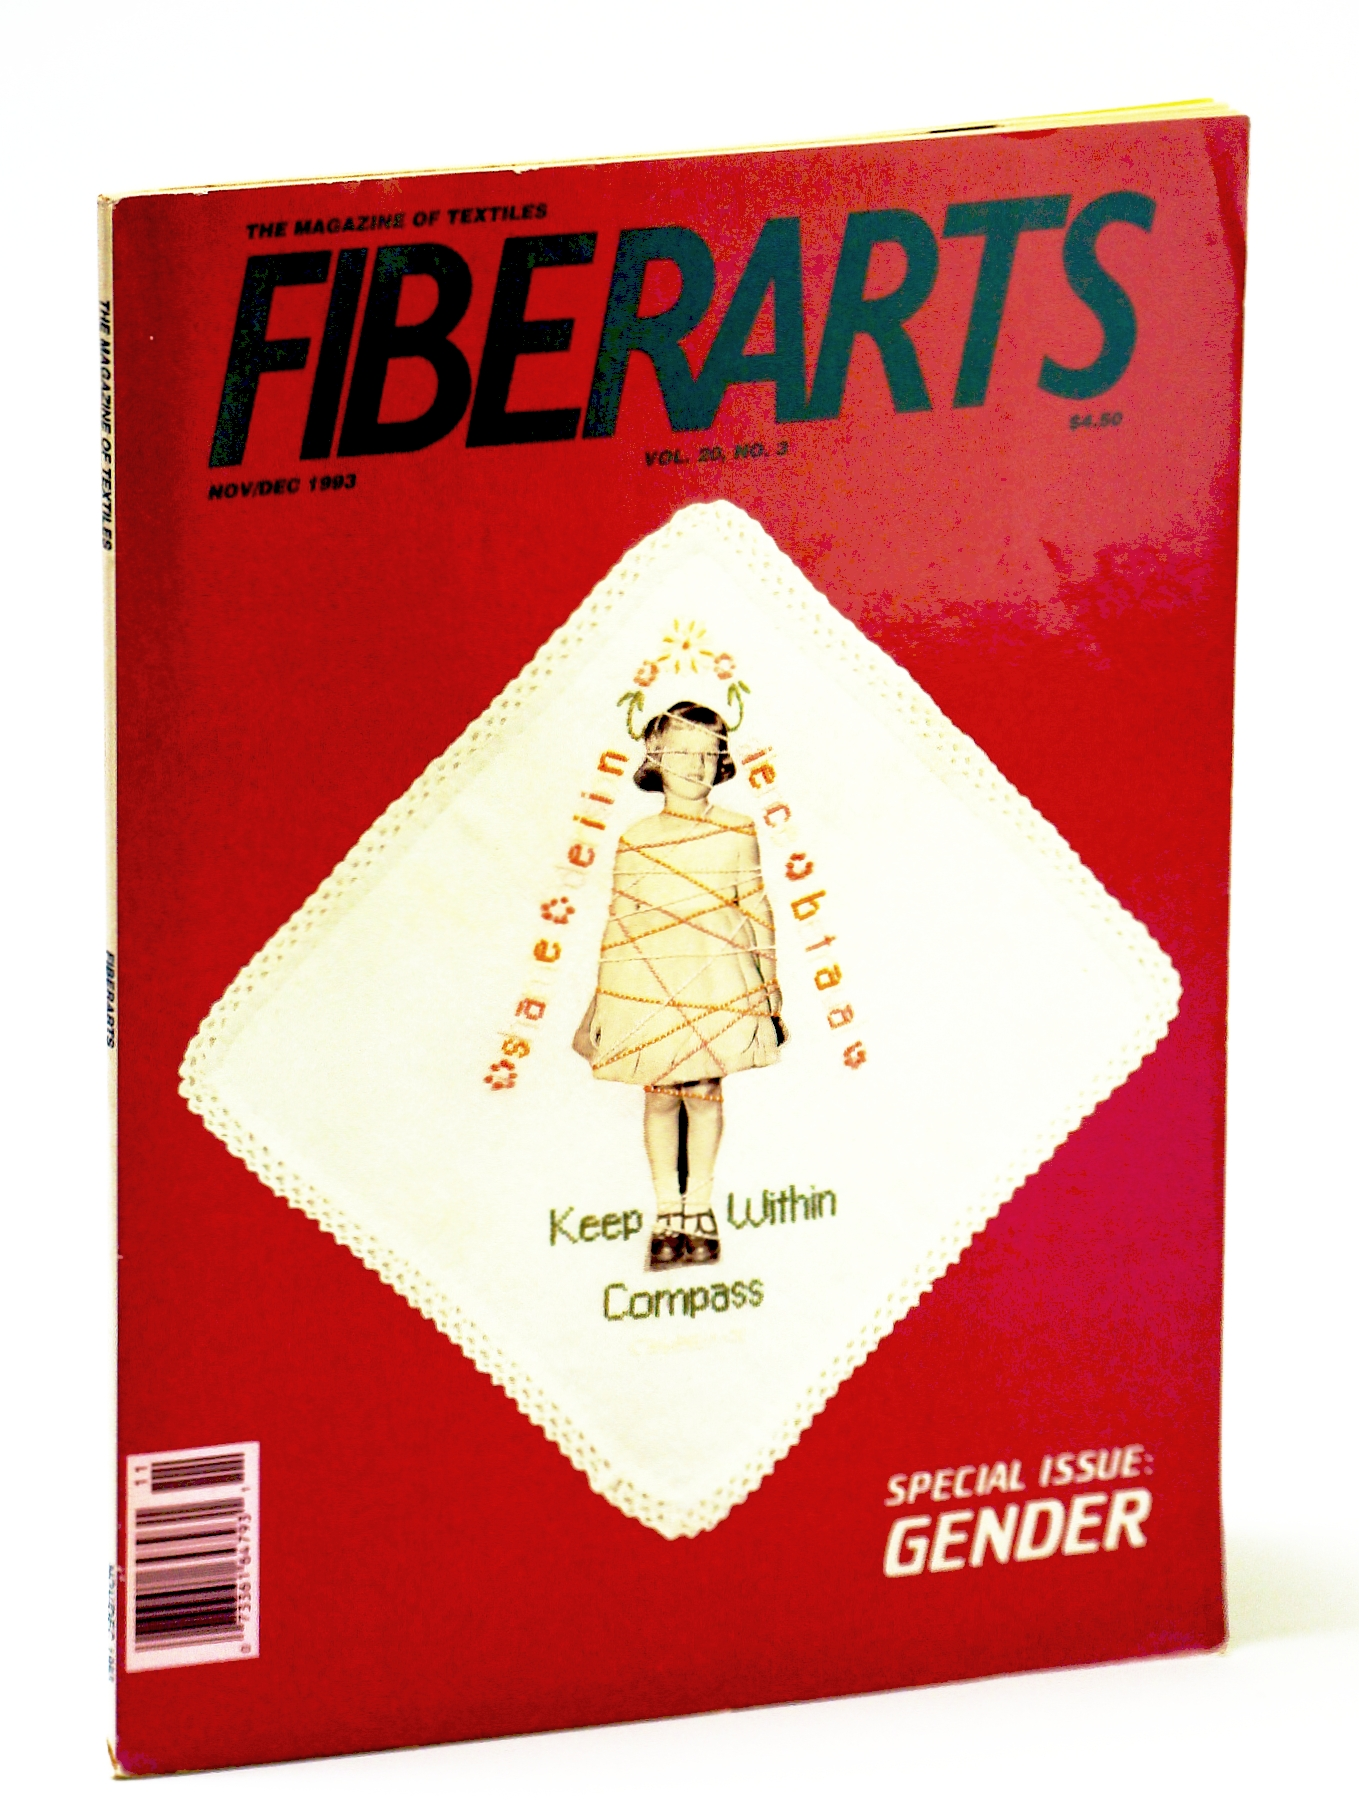 Image for Fiberarts, The Magazine of Textiles, November / December (Nov. / Dec.) 1993: Special Gender Issue